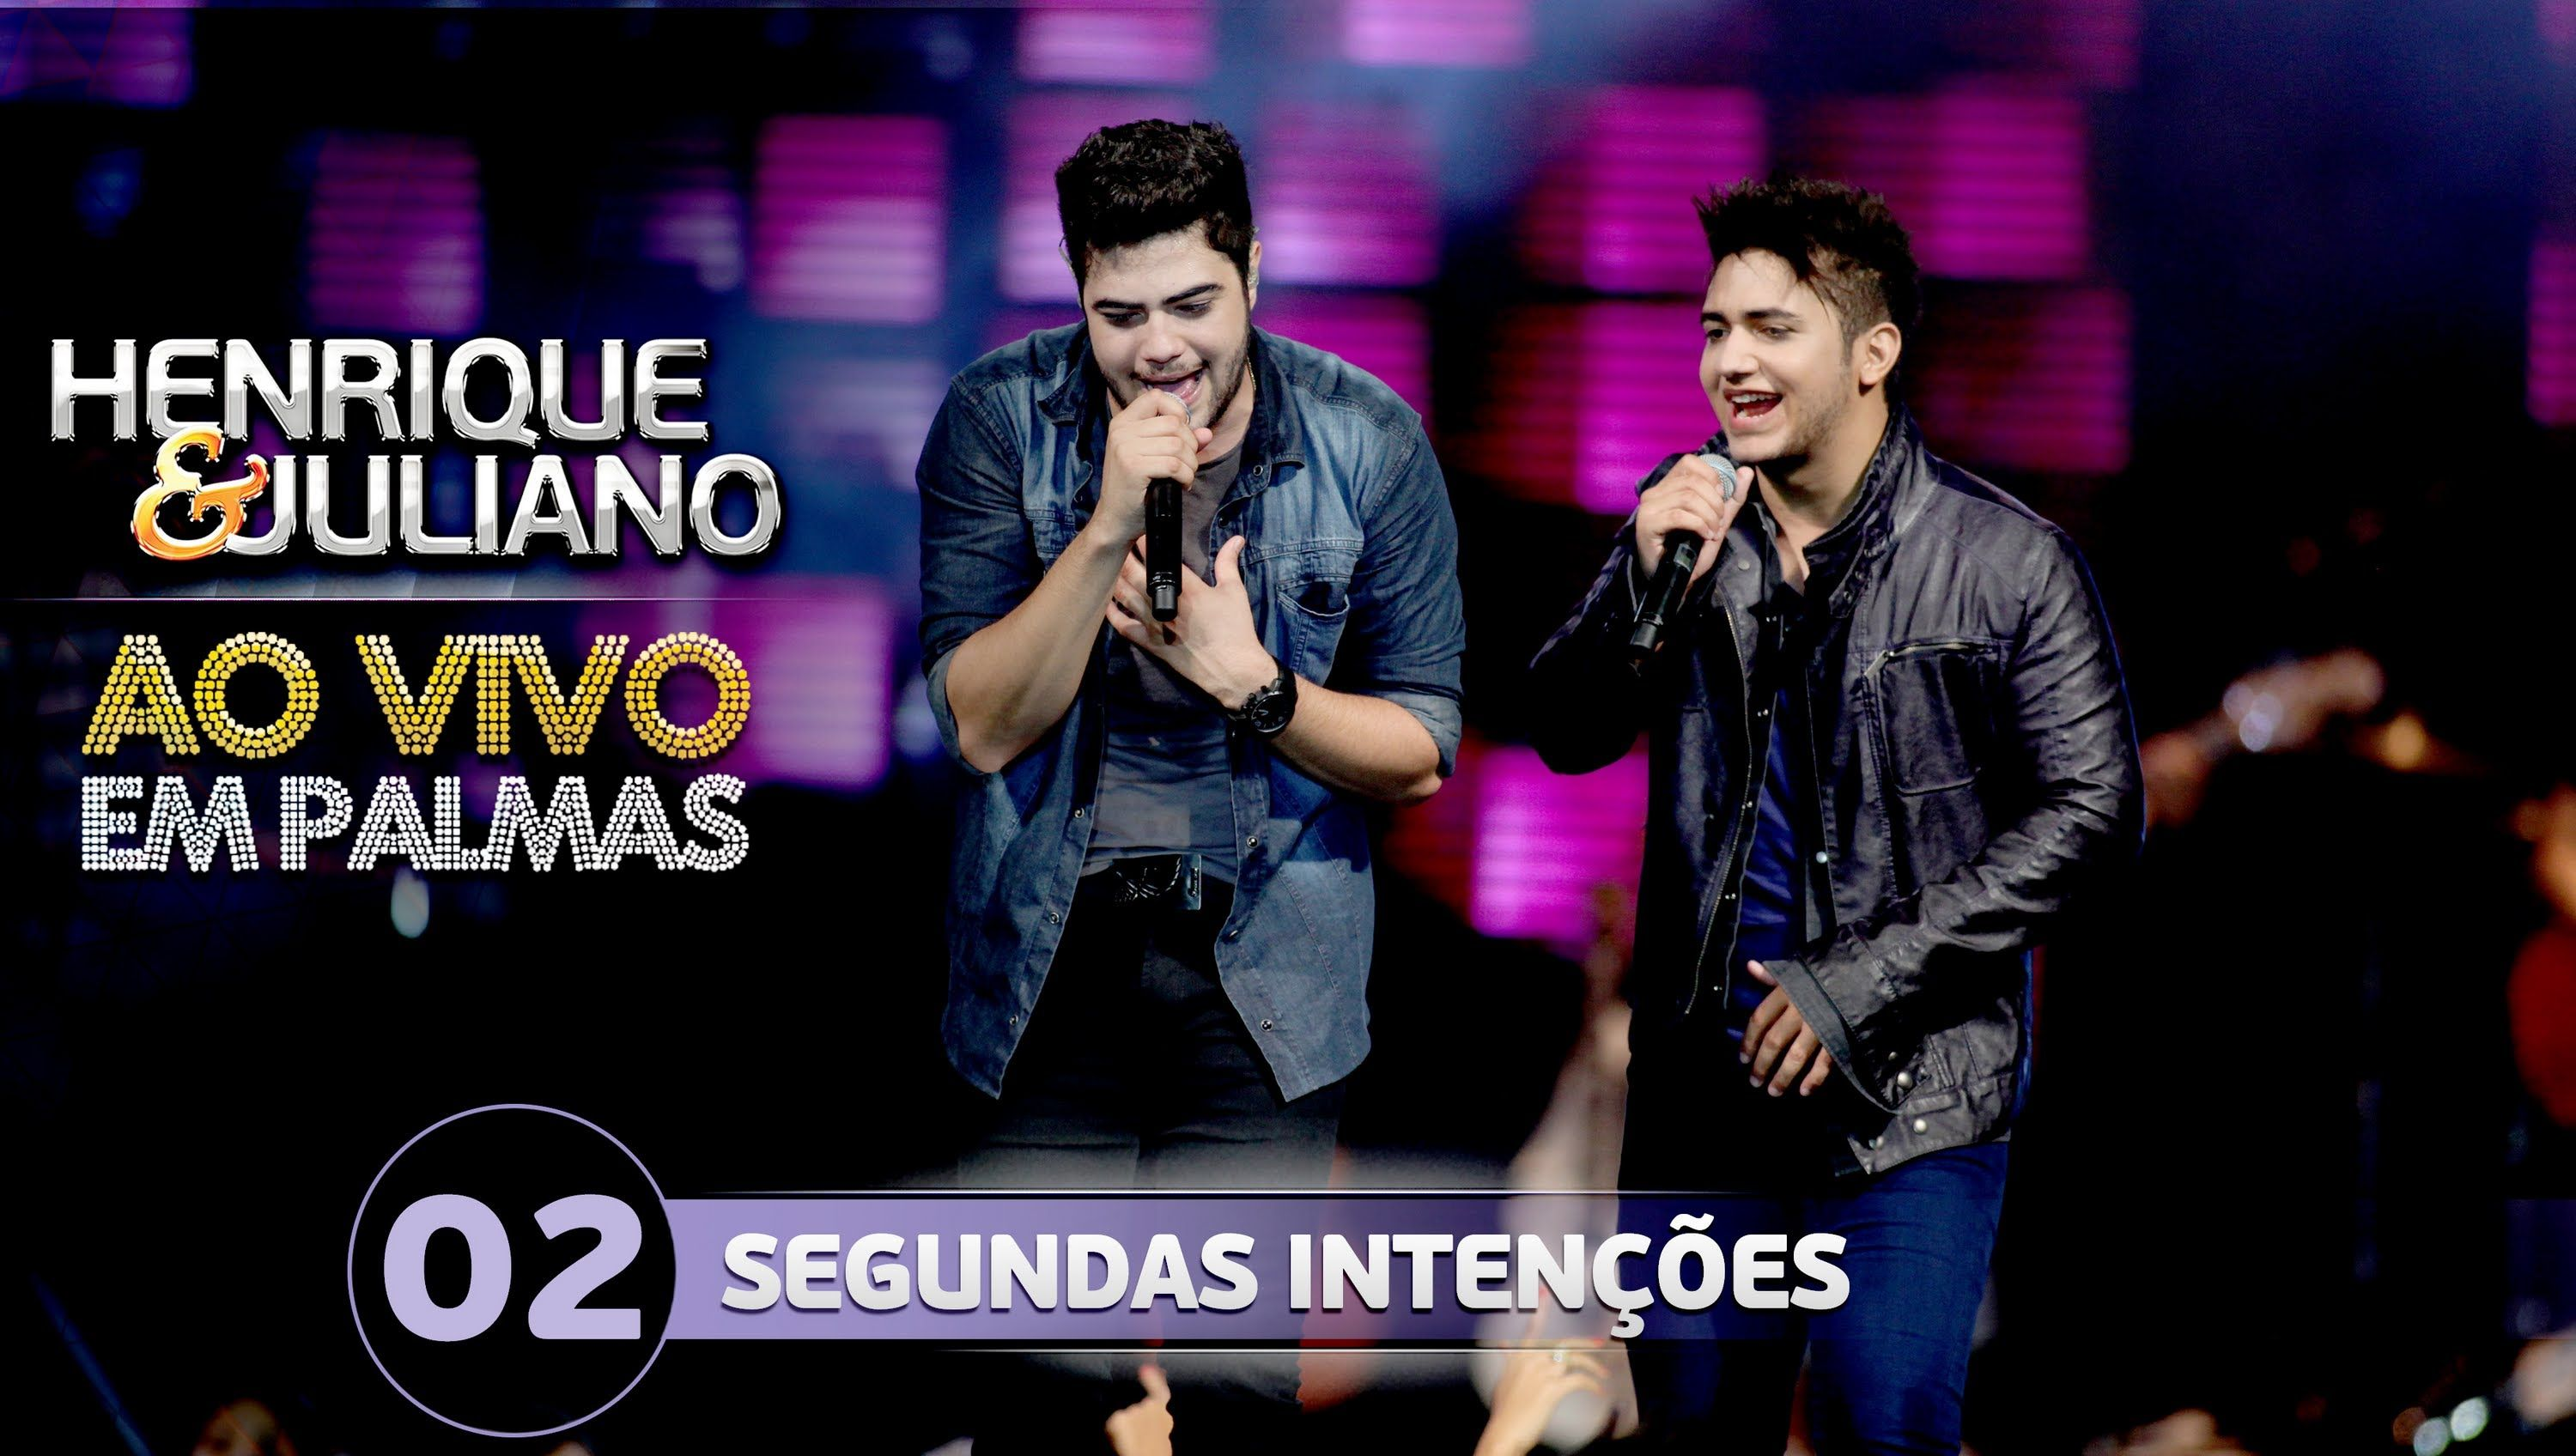 Segundas Intencoes Henrique E Juliano Dvd Ao Vivo Em Palmas